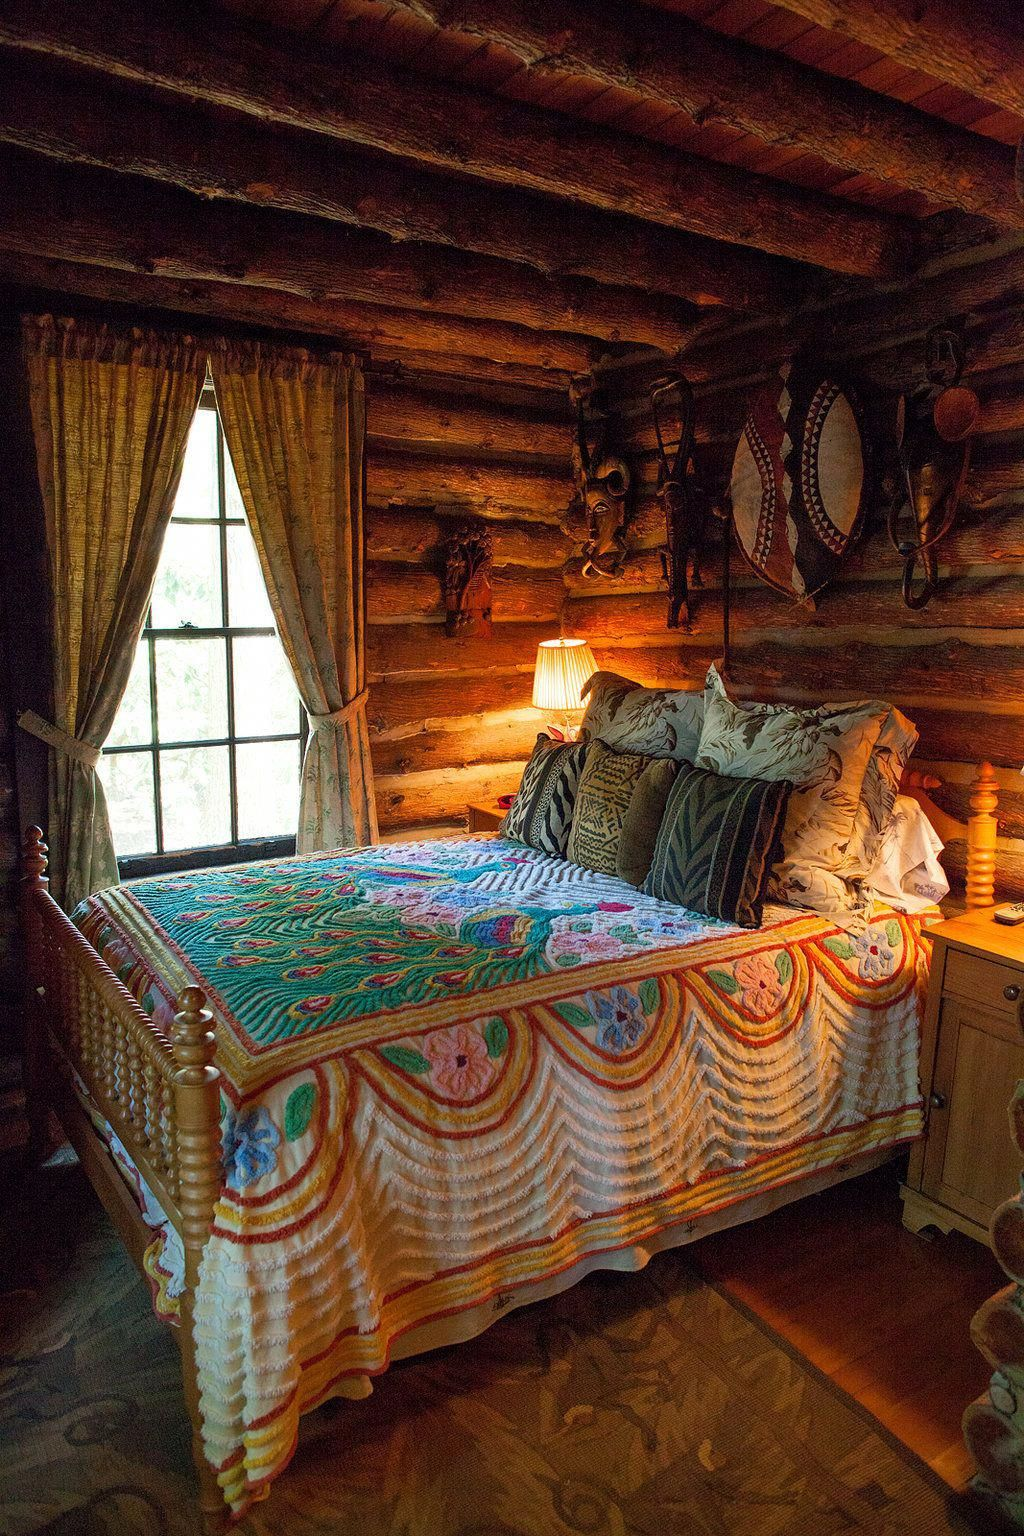 Hunting lodge like walking back in time on the